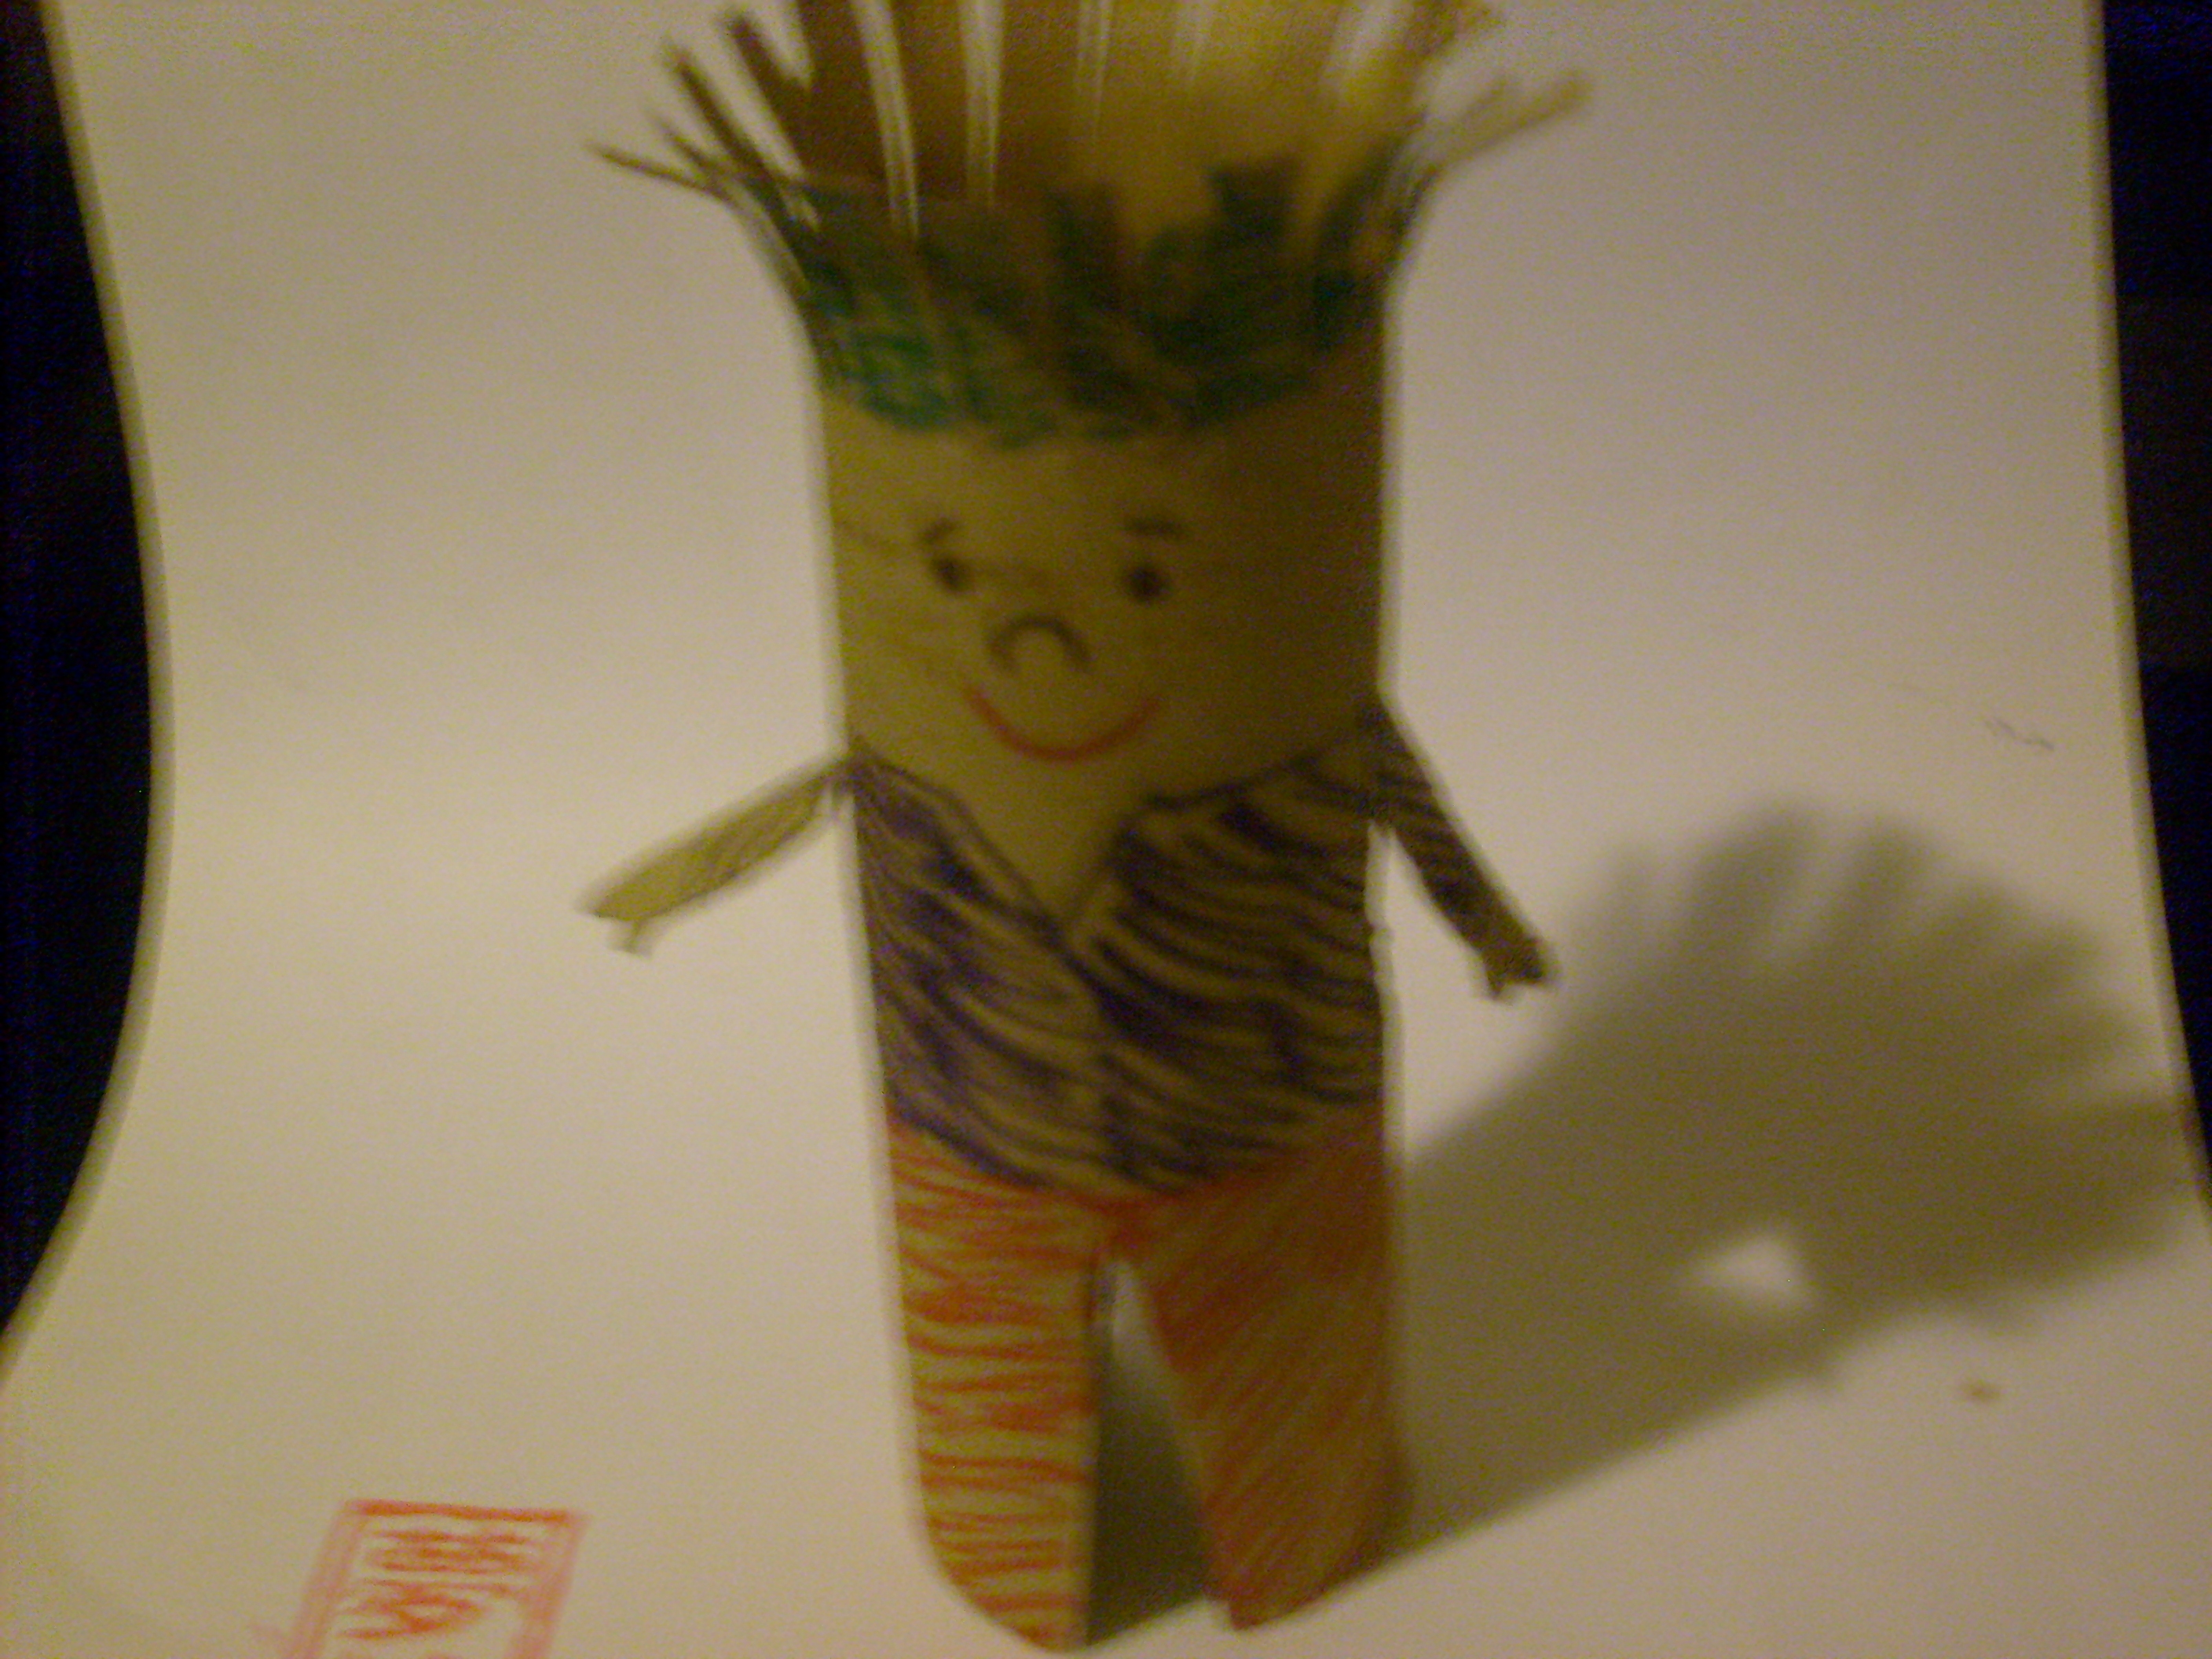 How to make a man out of toilet paper rolls ehow uk for Things to make with toilet paper rolls